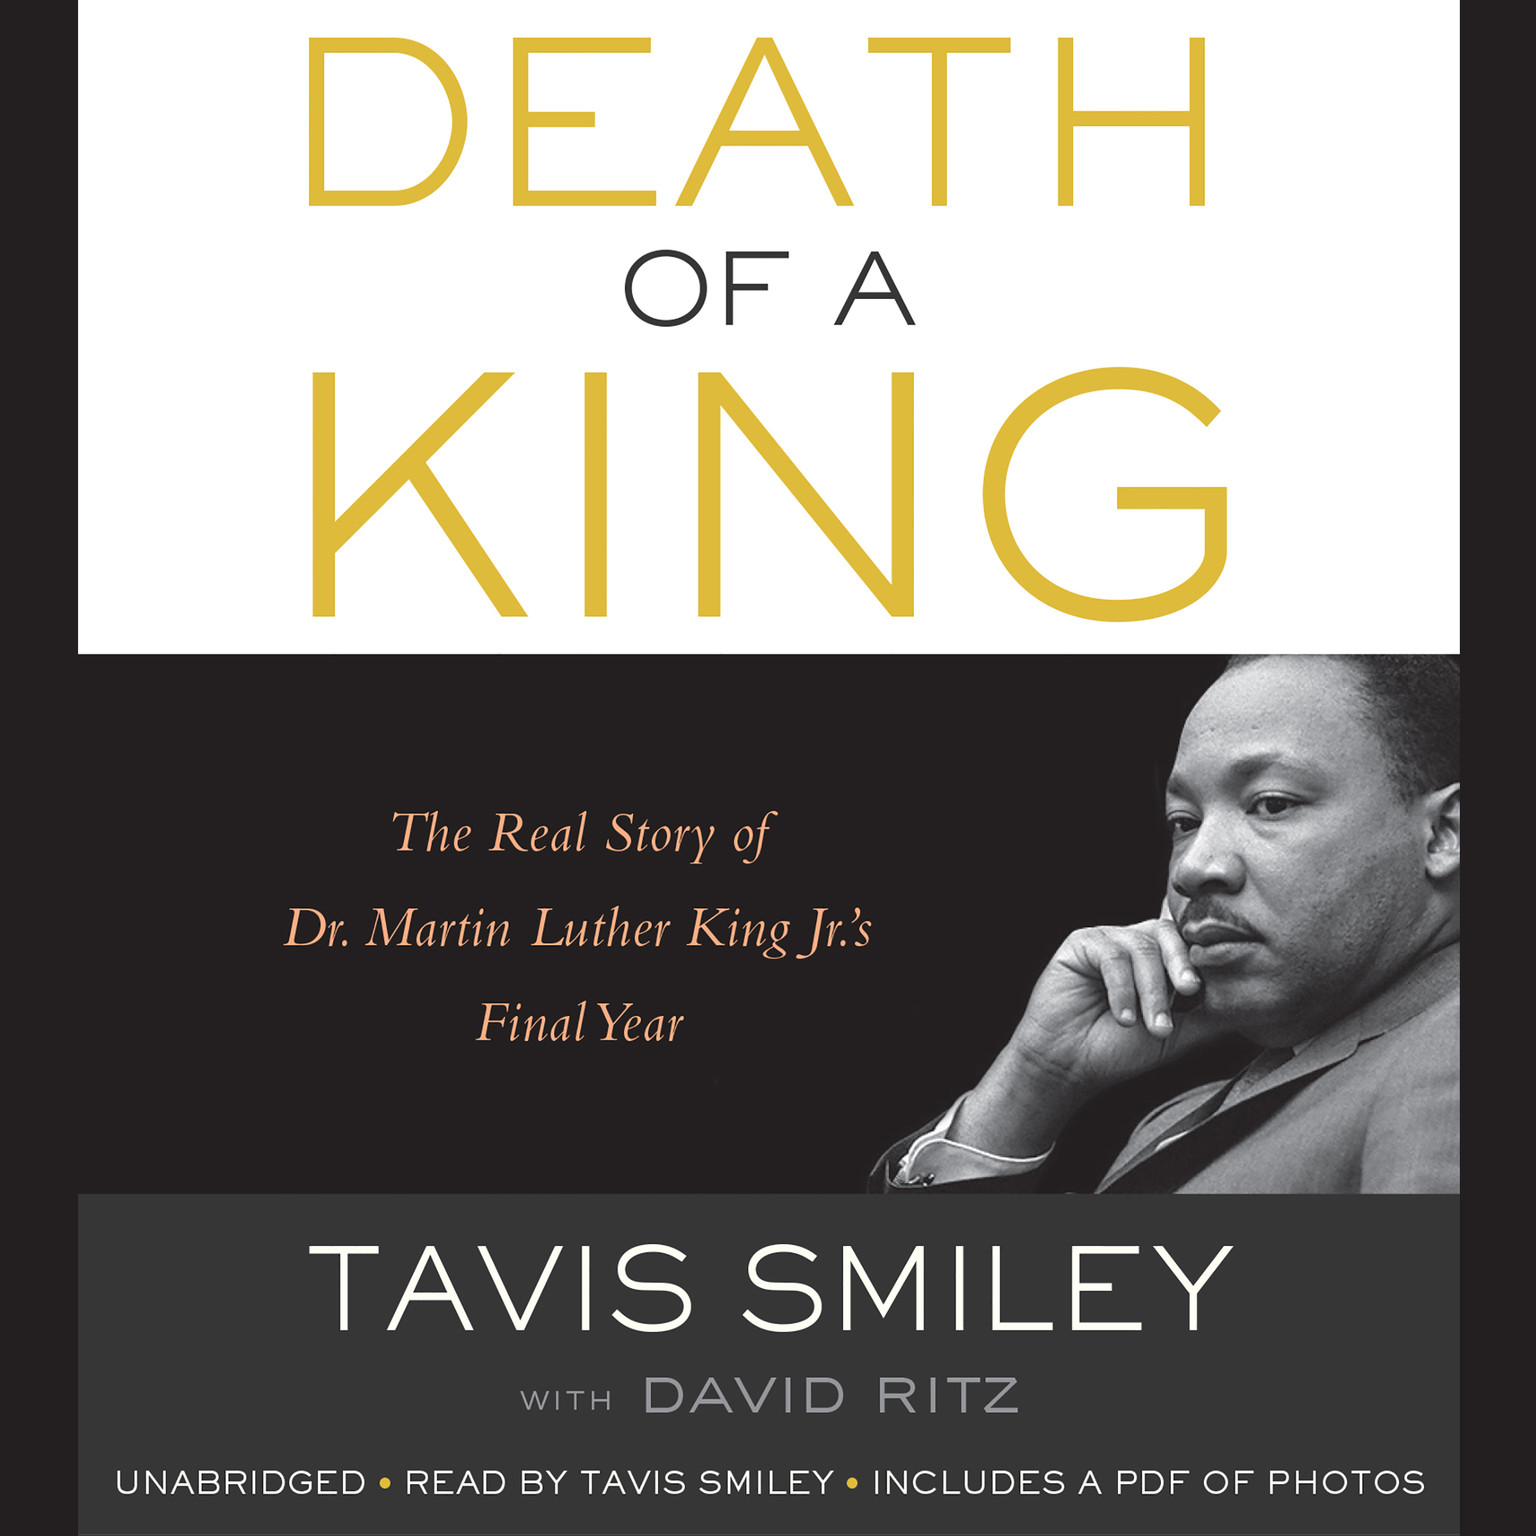 martin luther king story pdf